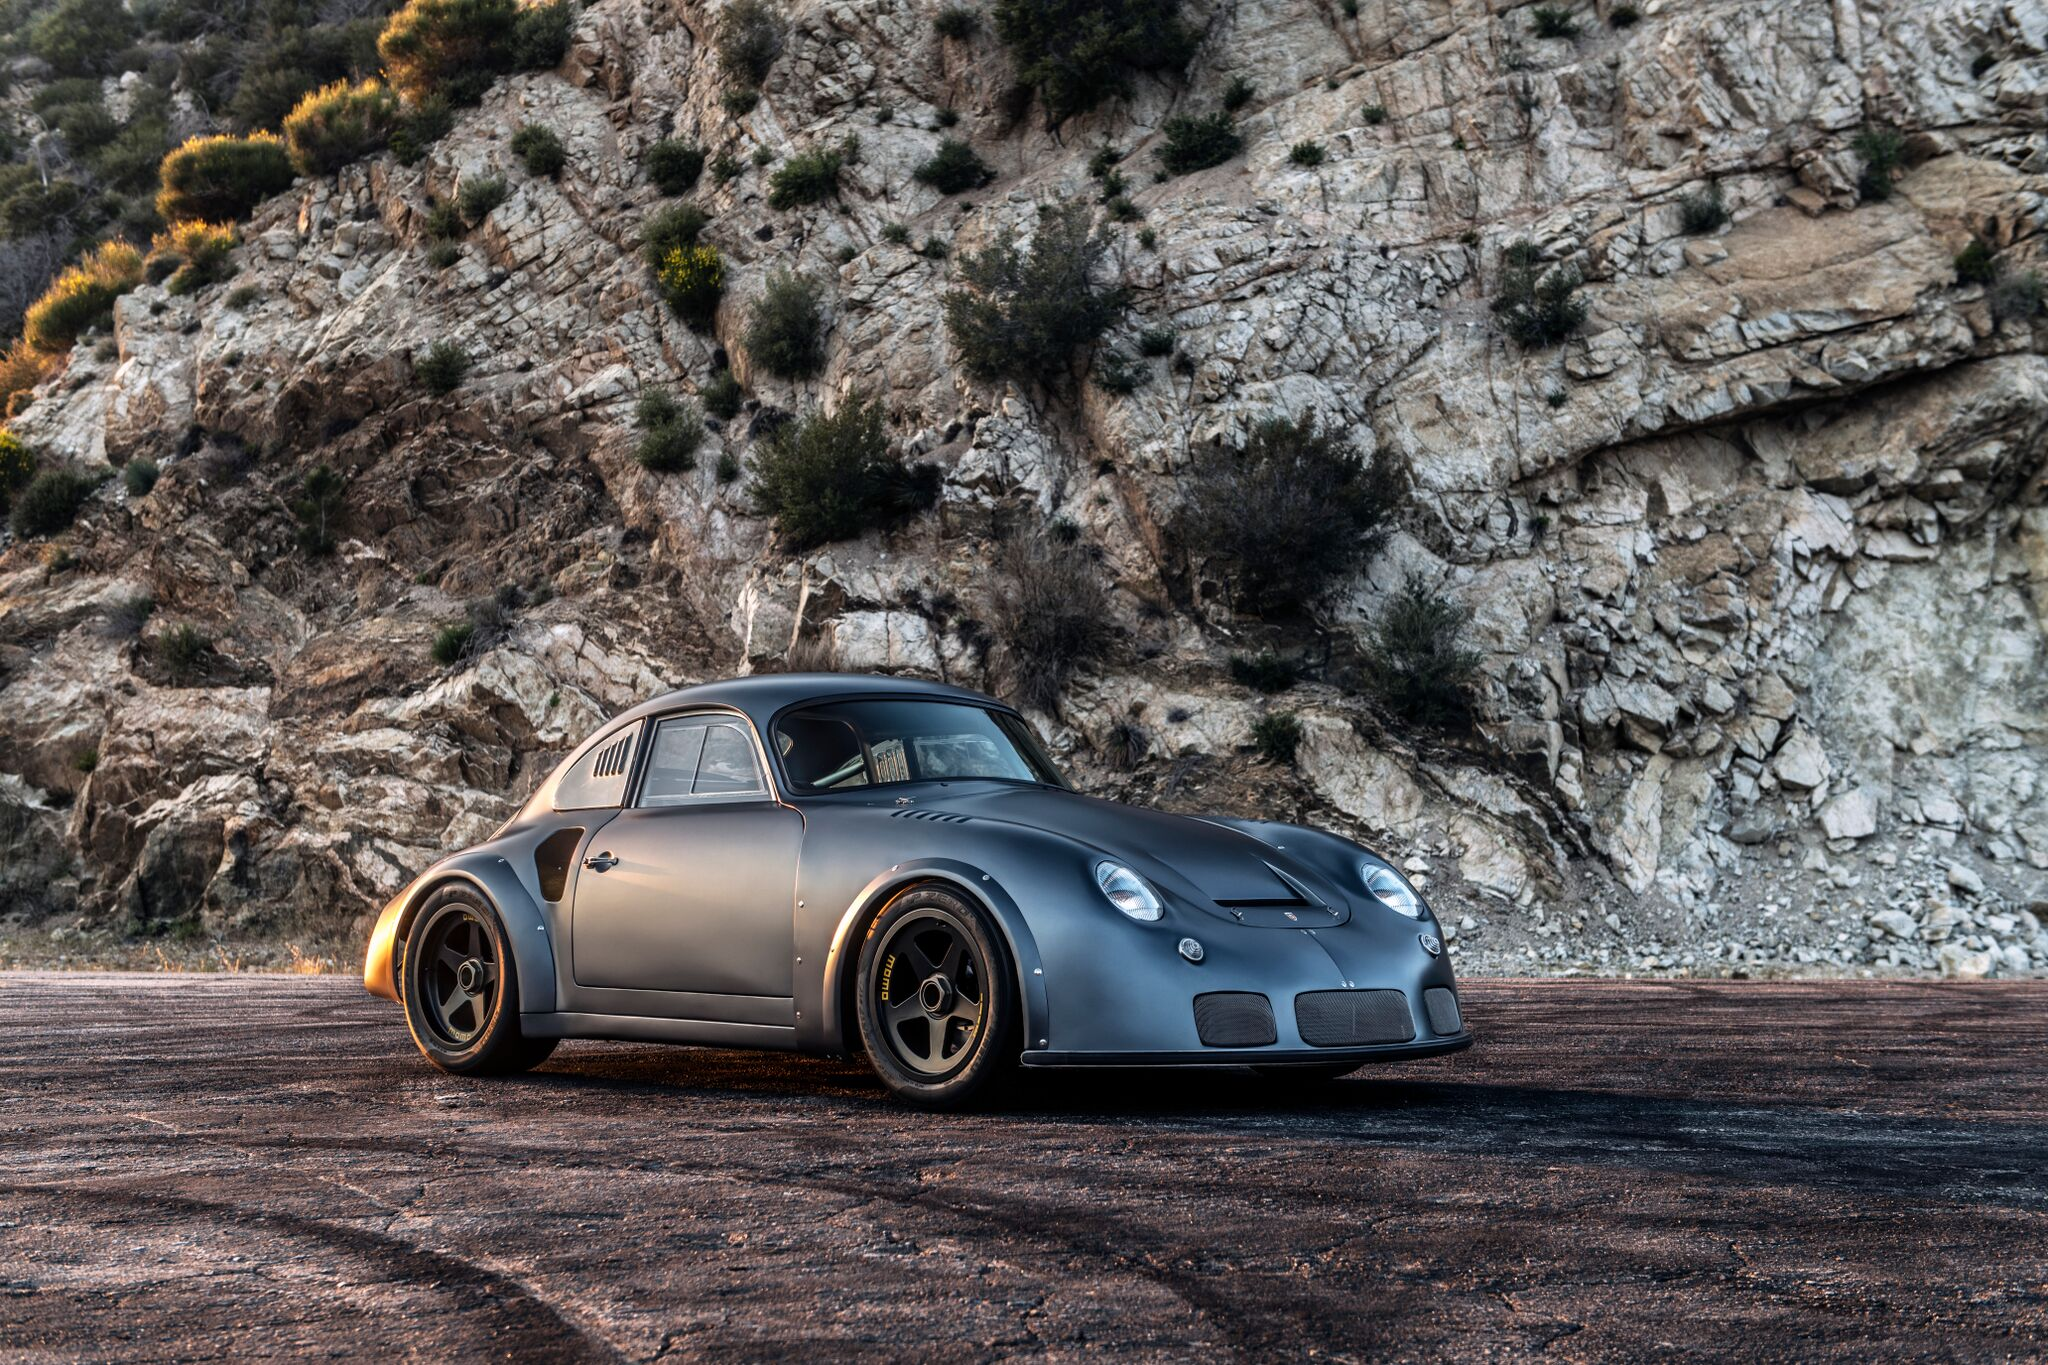 Porsche-356-RSR-Outlaw-by-Momo-and-Emory-motorsports-8